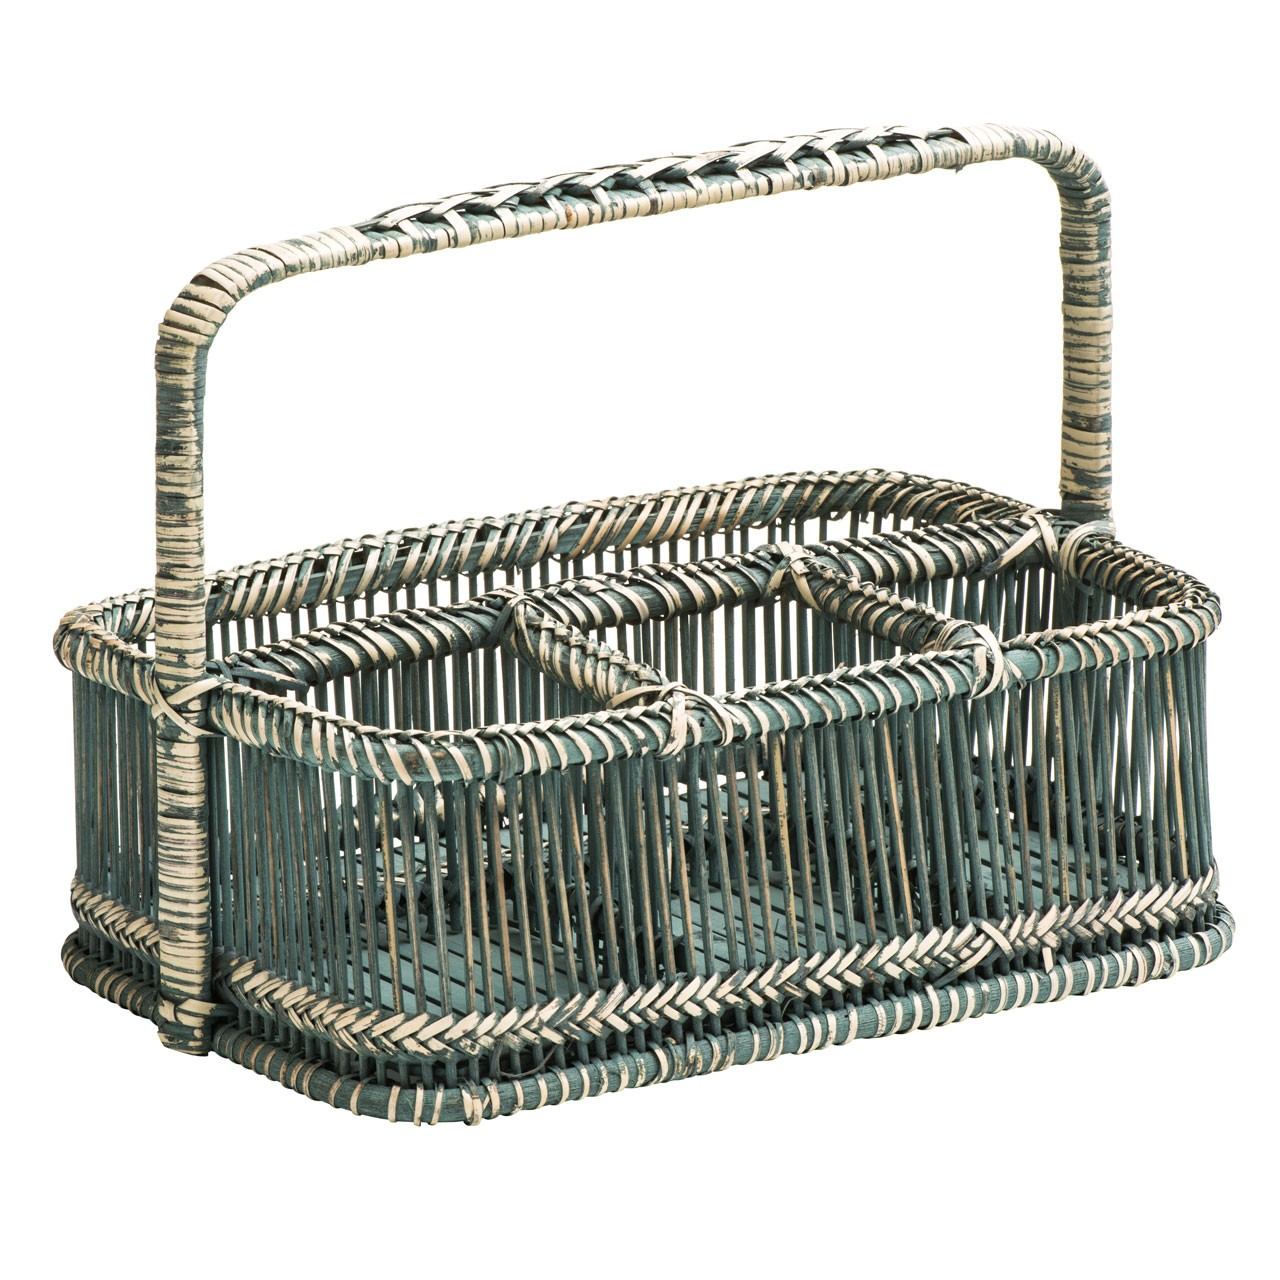 Prime Furnishing Rectangular Caddy Basket, Rattan/Bamboo